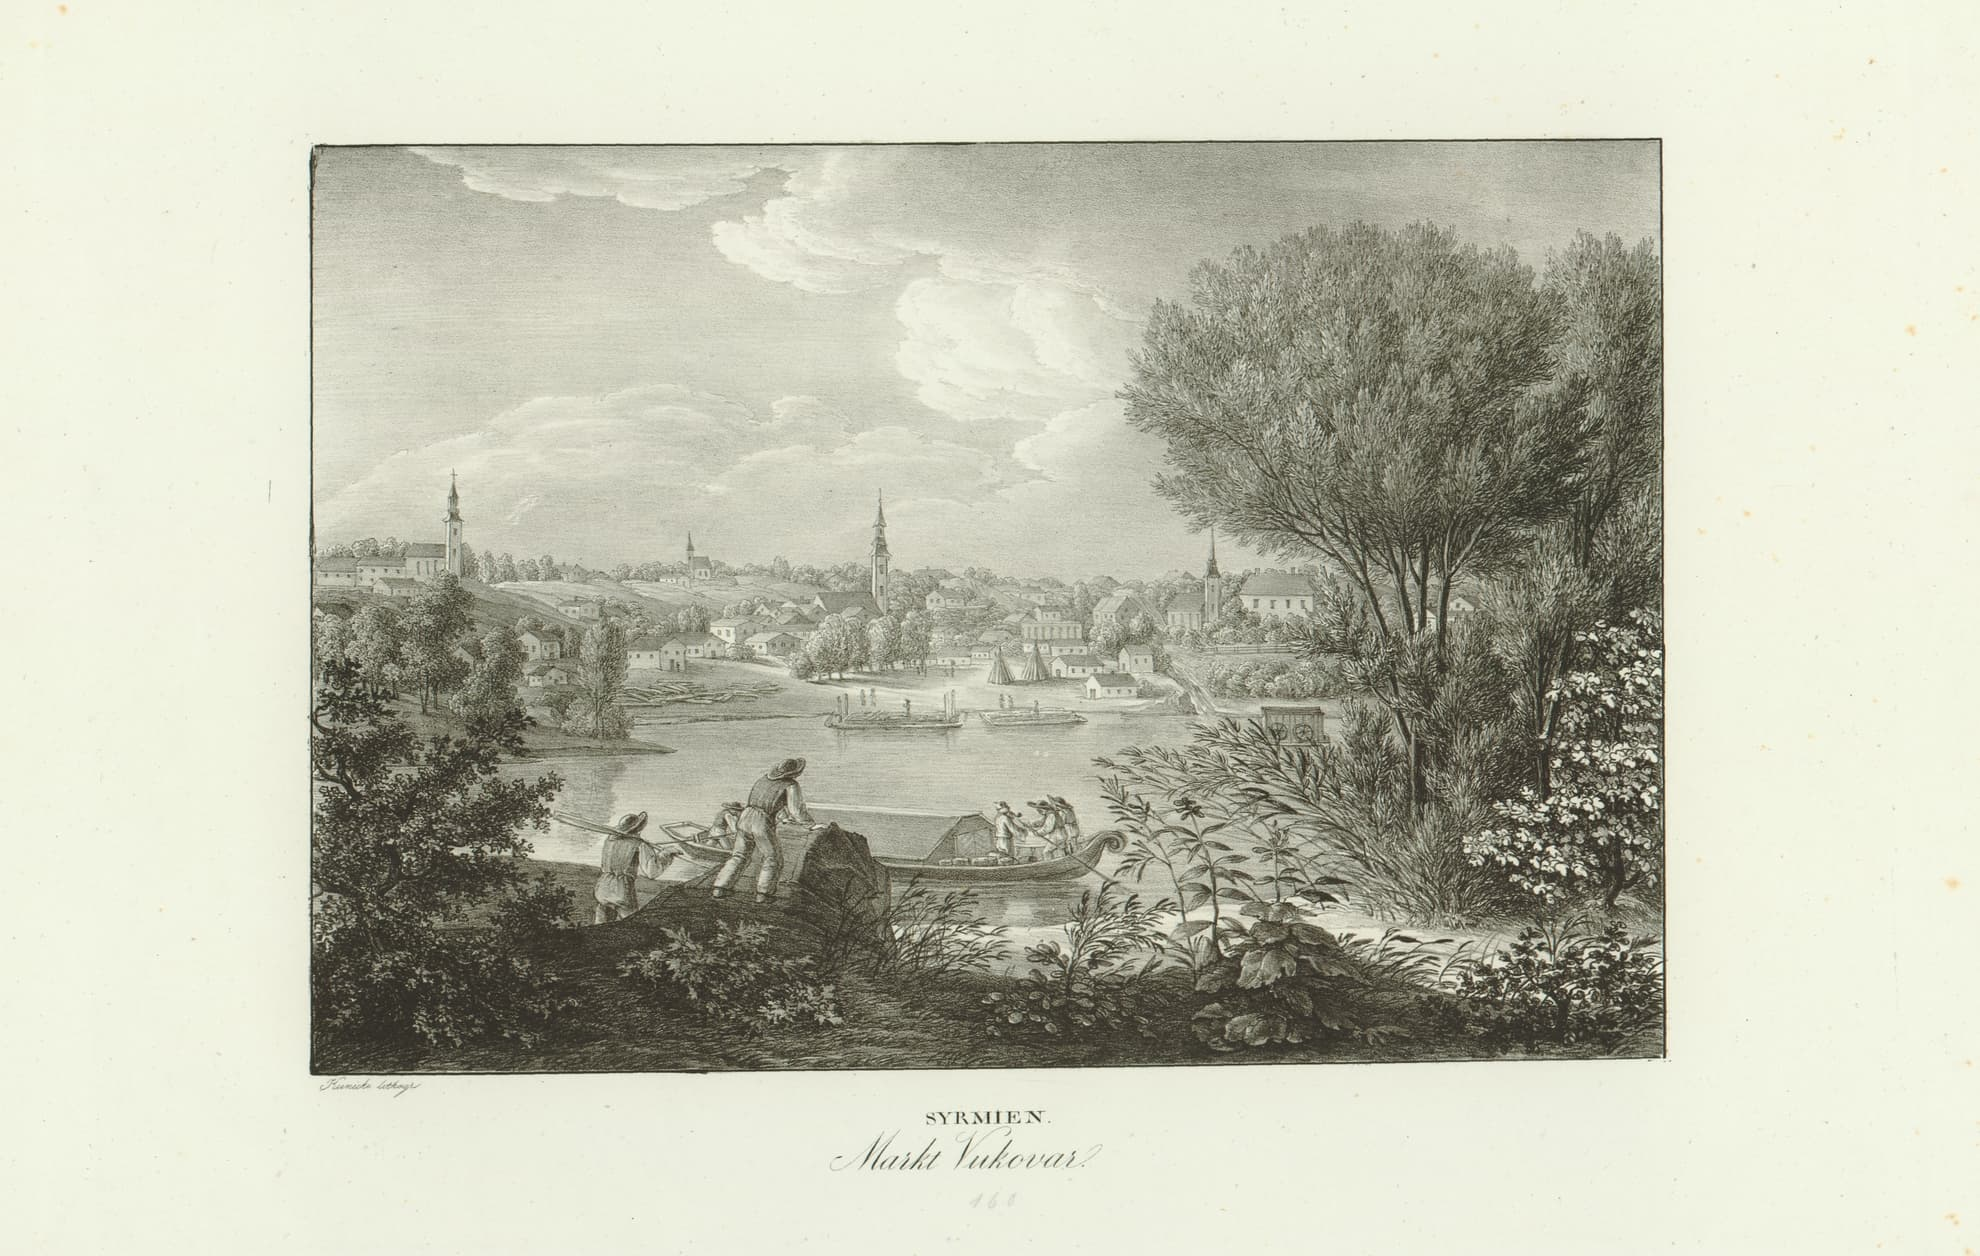 Syrmia, the Vukovar fair (Syrmien : Markt Vukovar), a lithograph, Vienna, 1819 – 1826. Print Collection of the National and University Library in Zagreb.